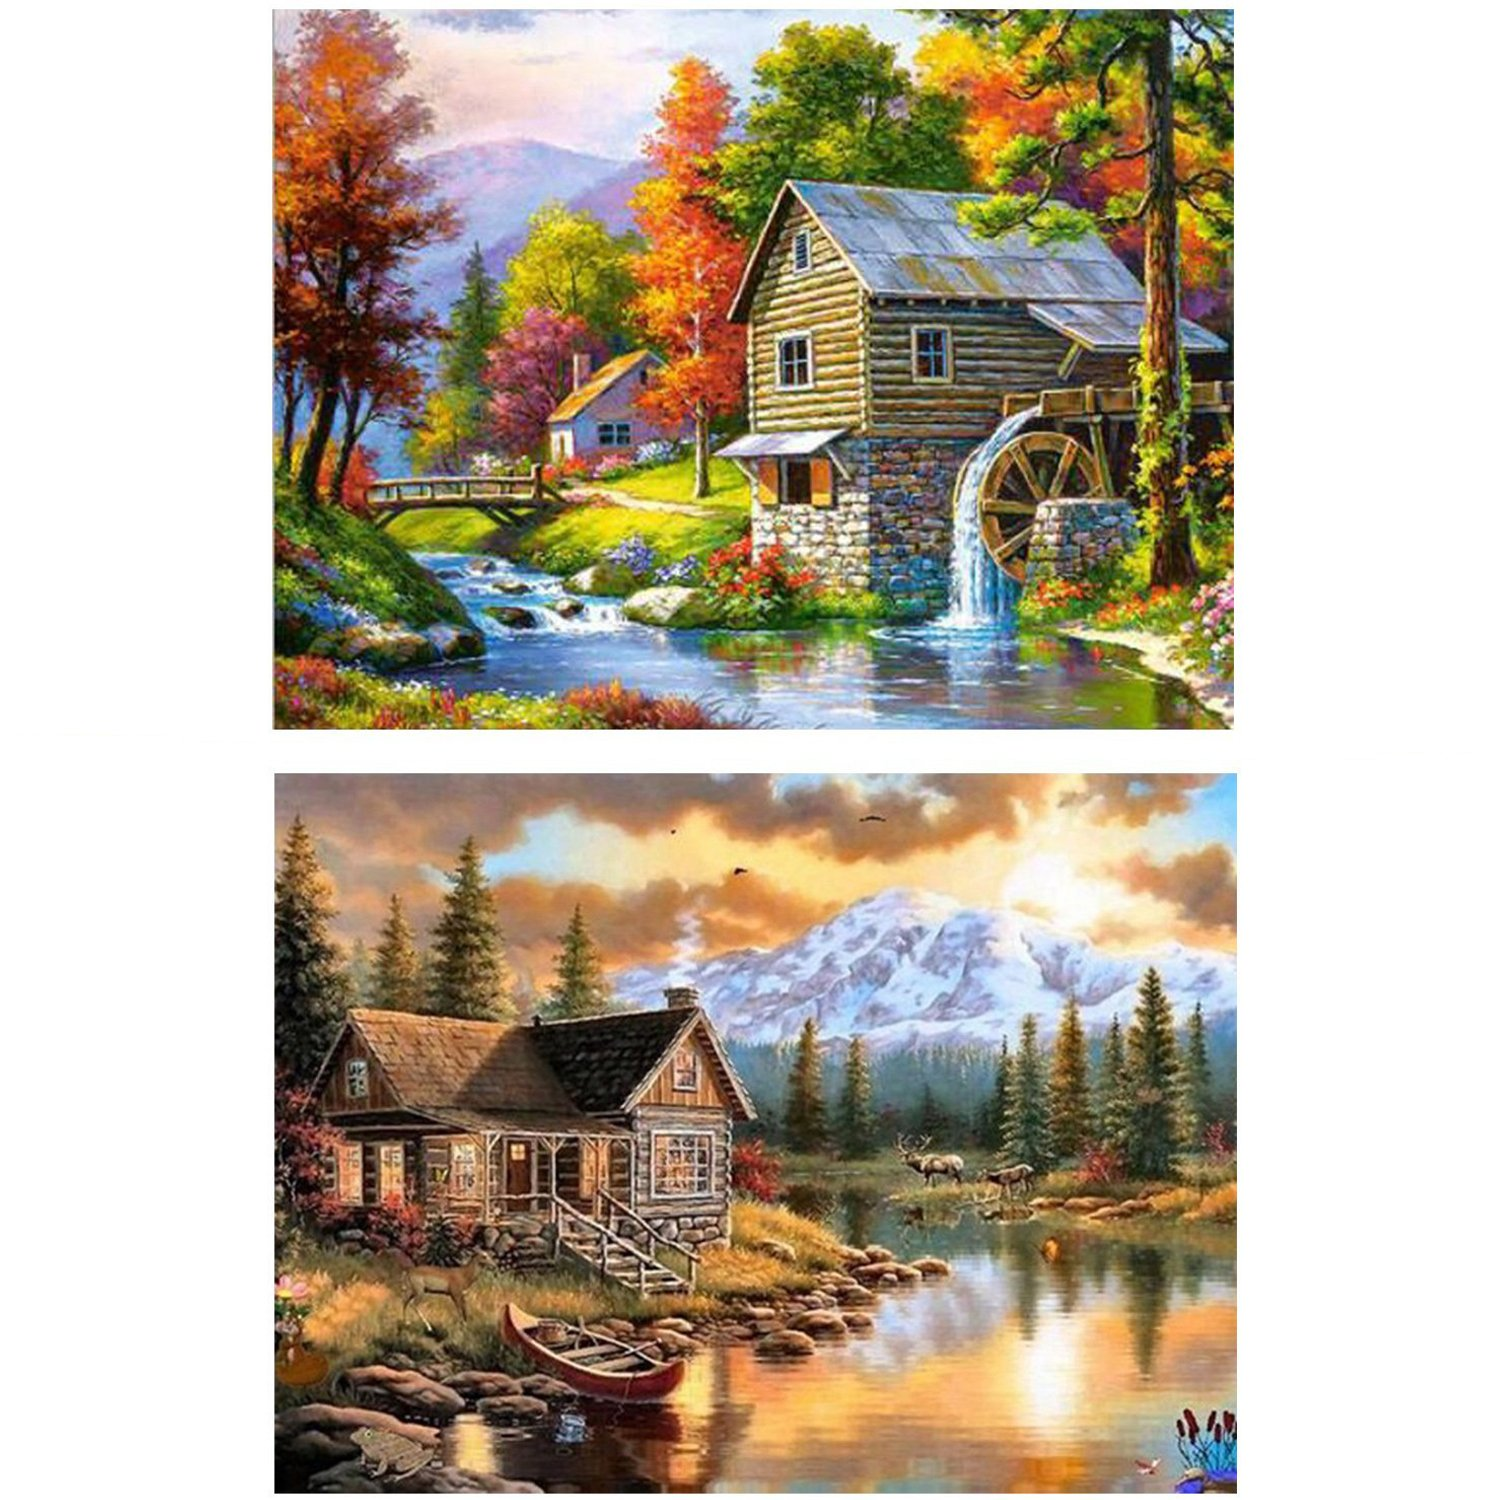 2 Pack 5D DIY Diamond Painting Set Full Drill Arts Crafts for Adults Relieve Stress for Living Room Decoration, Forest House(12X16 inches/30X40cm) BUBBLE